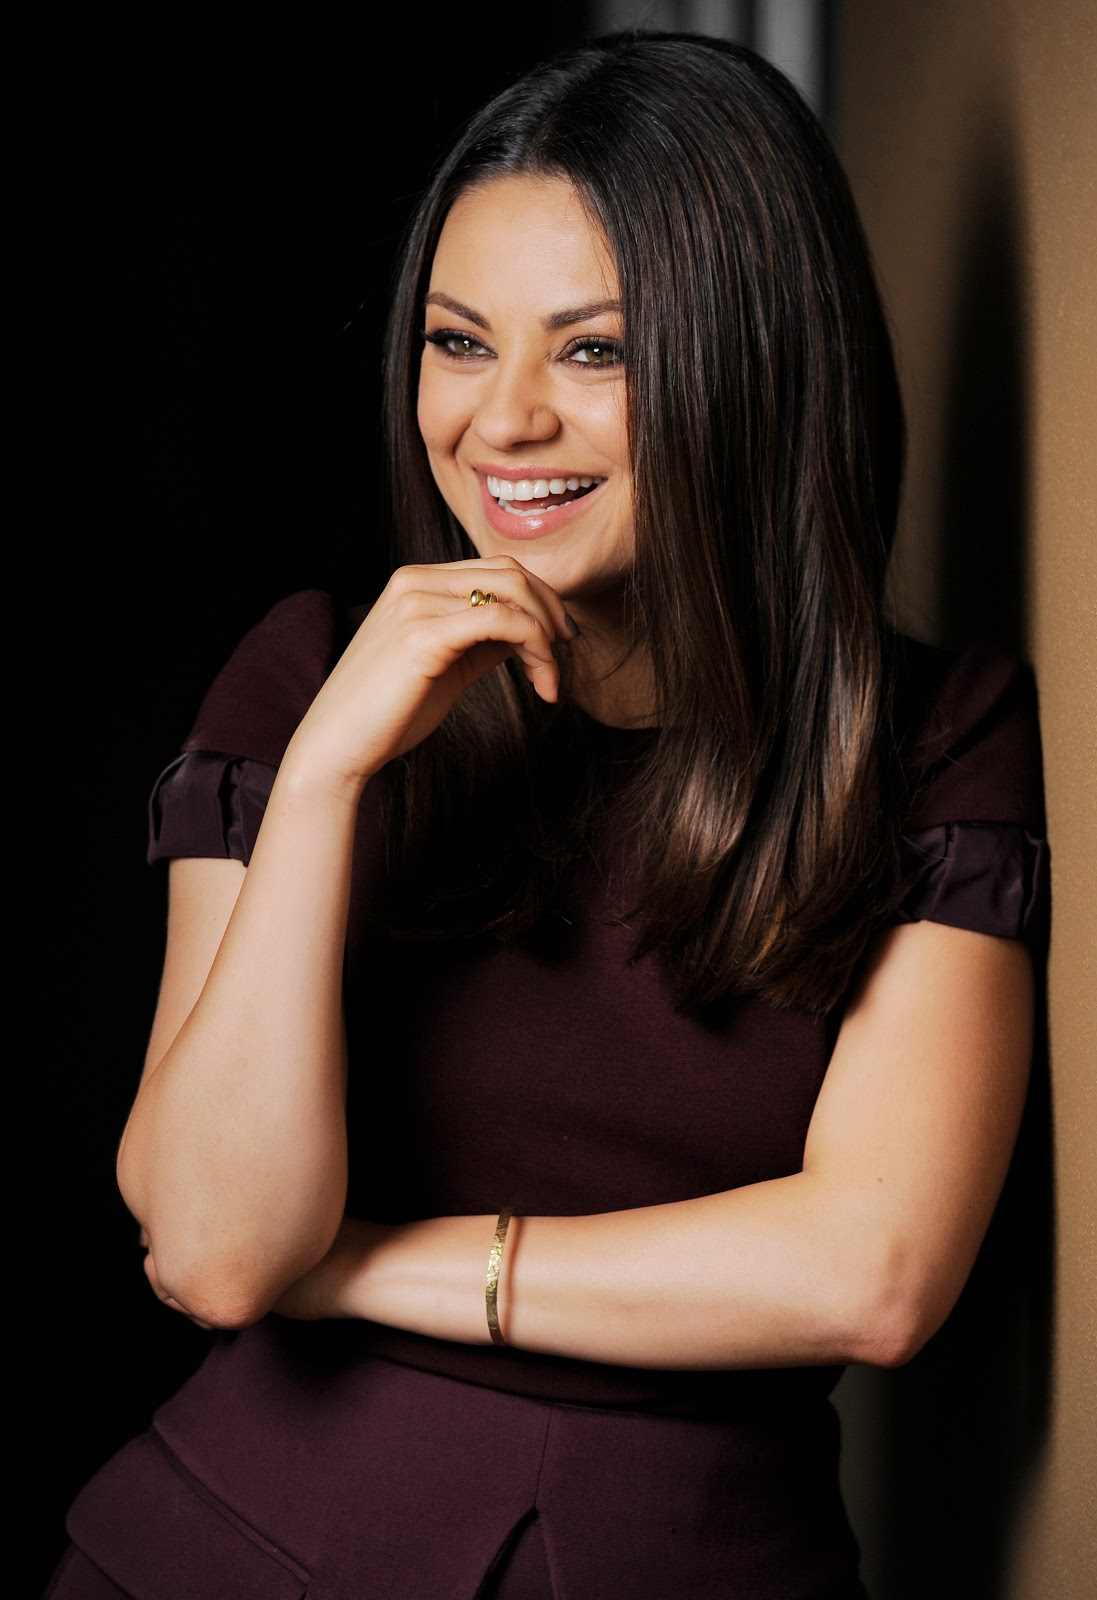 Mila Kunis – TED Photocall Full HD Images - HD Photos Mila Kunis